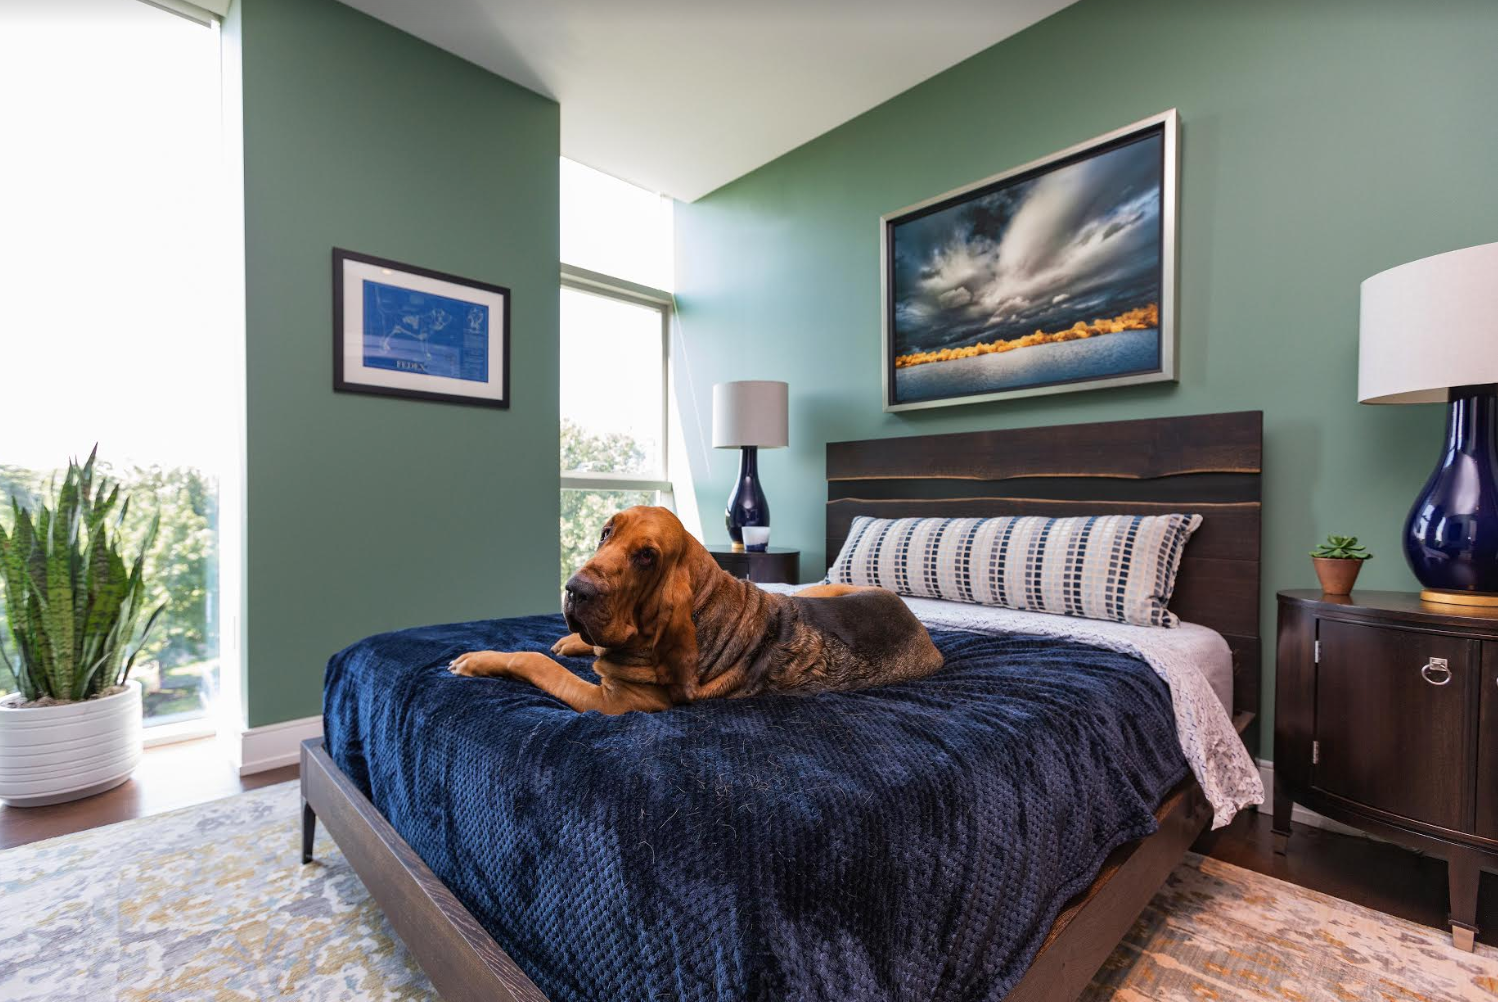 Bedroom designed by Henck Design featuring Fedex the dog